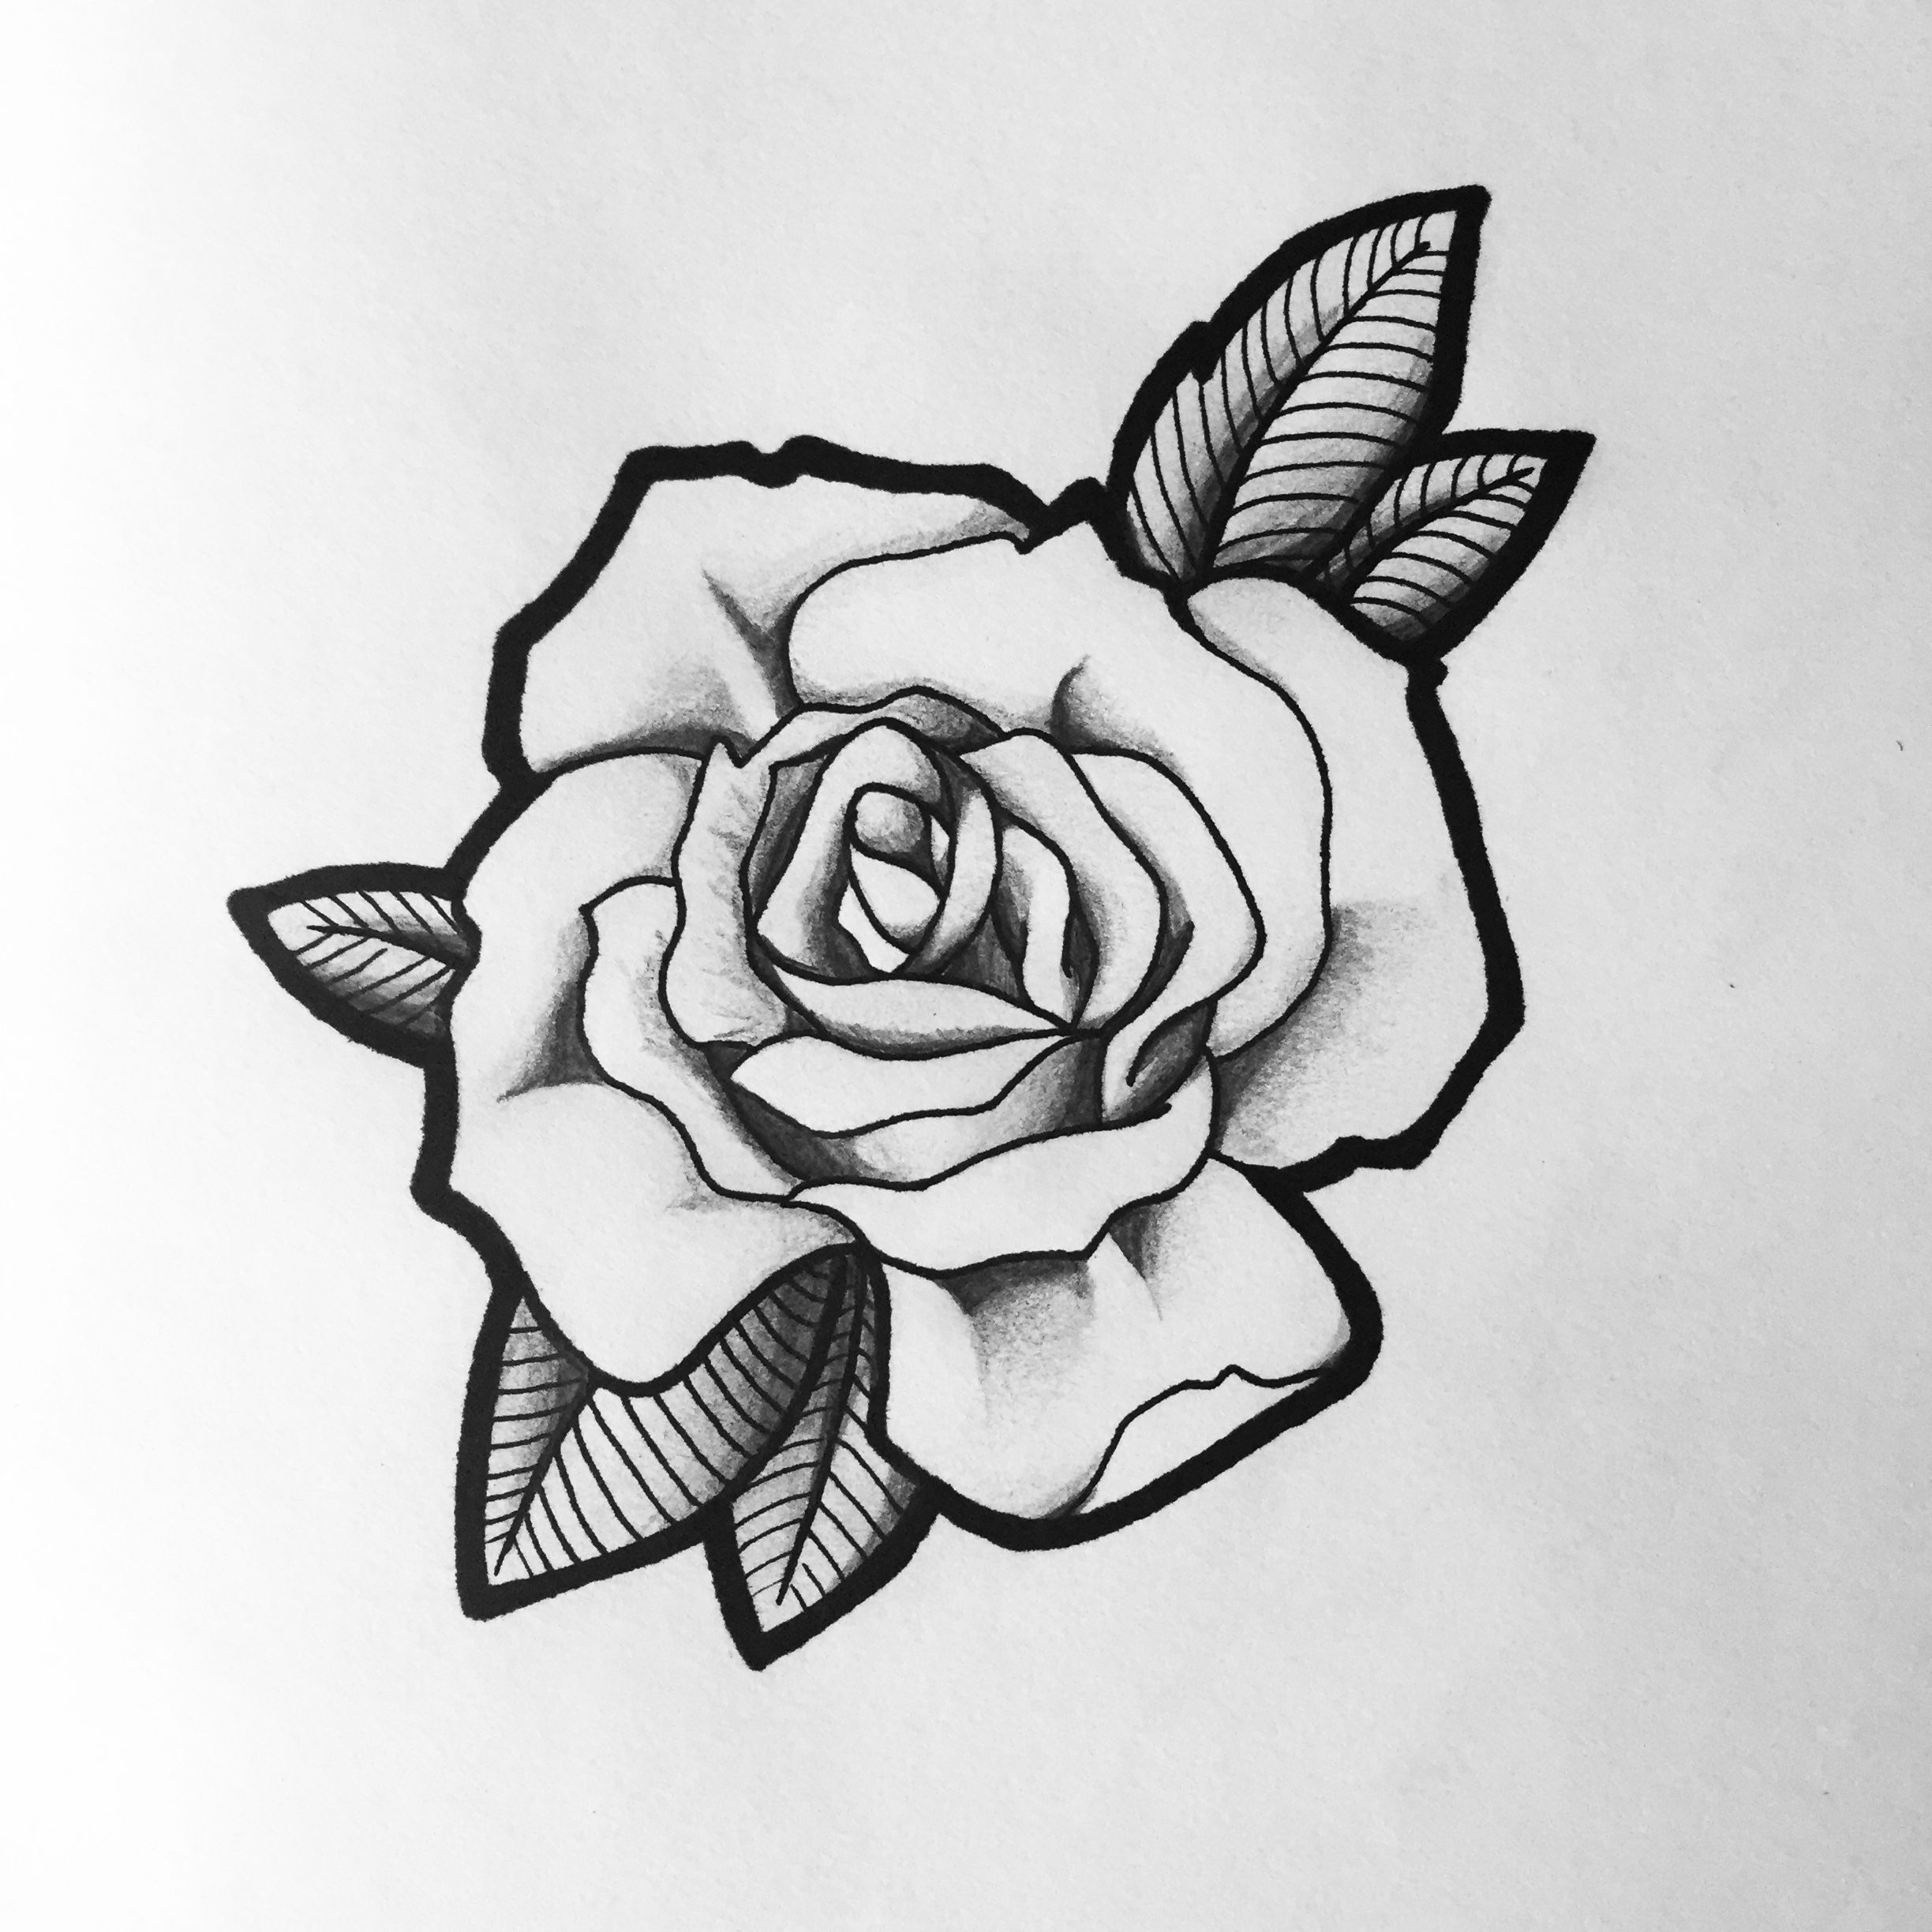 Tattoo Ideas With Roses: Rose Tattoo Design Black And Grey